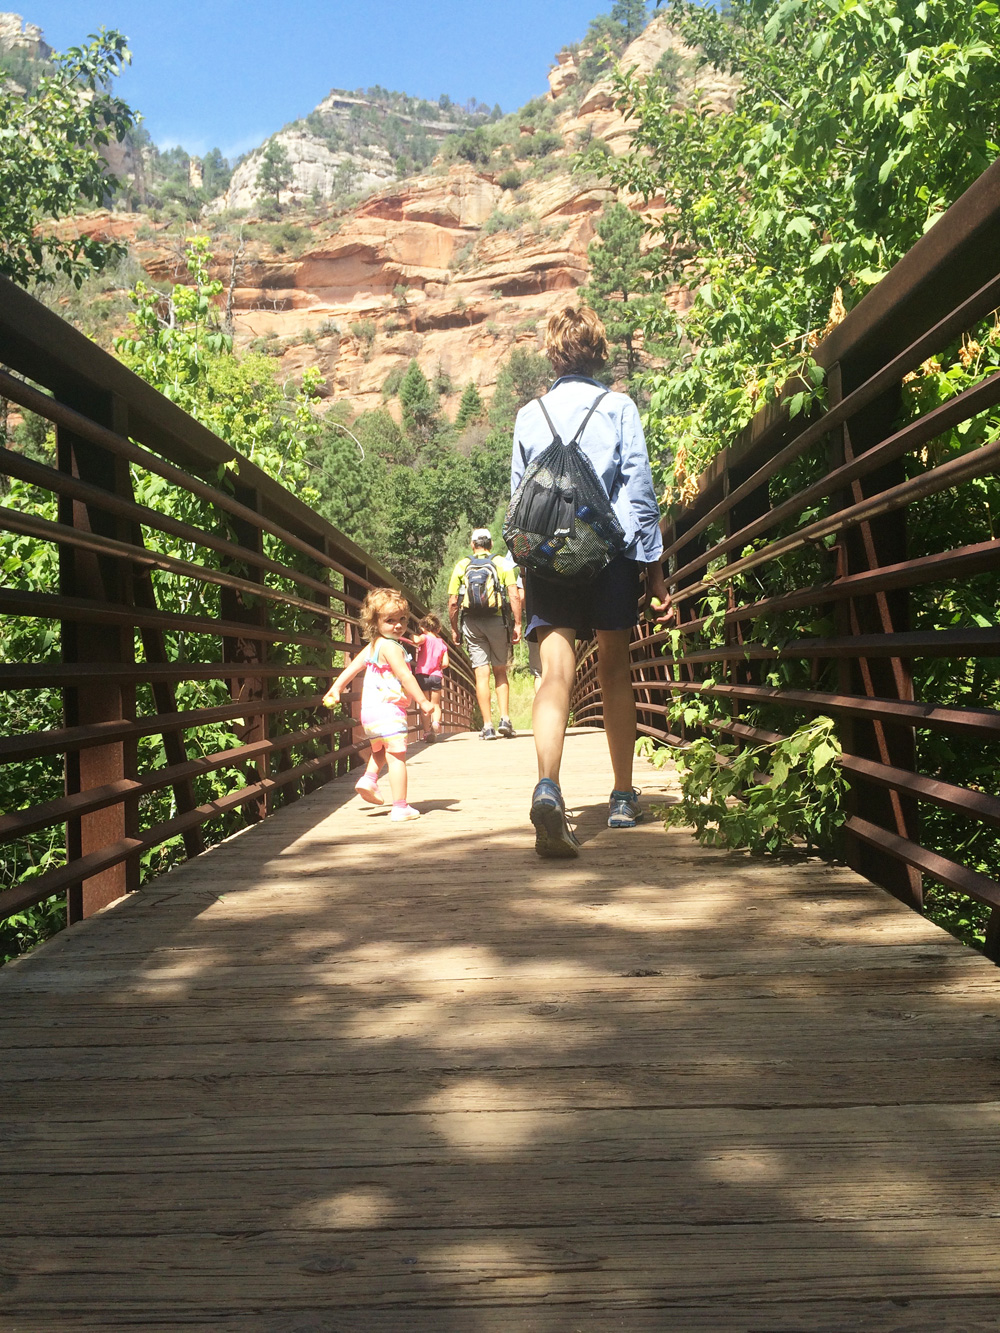 Family Time in Sedona, 2015